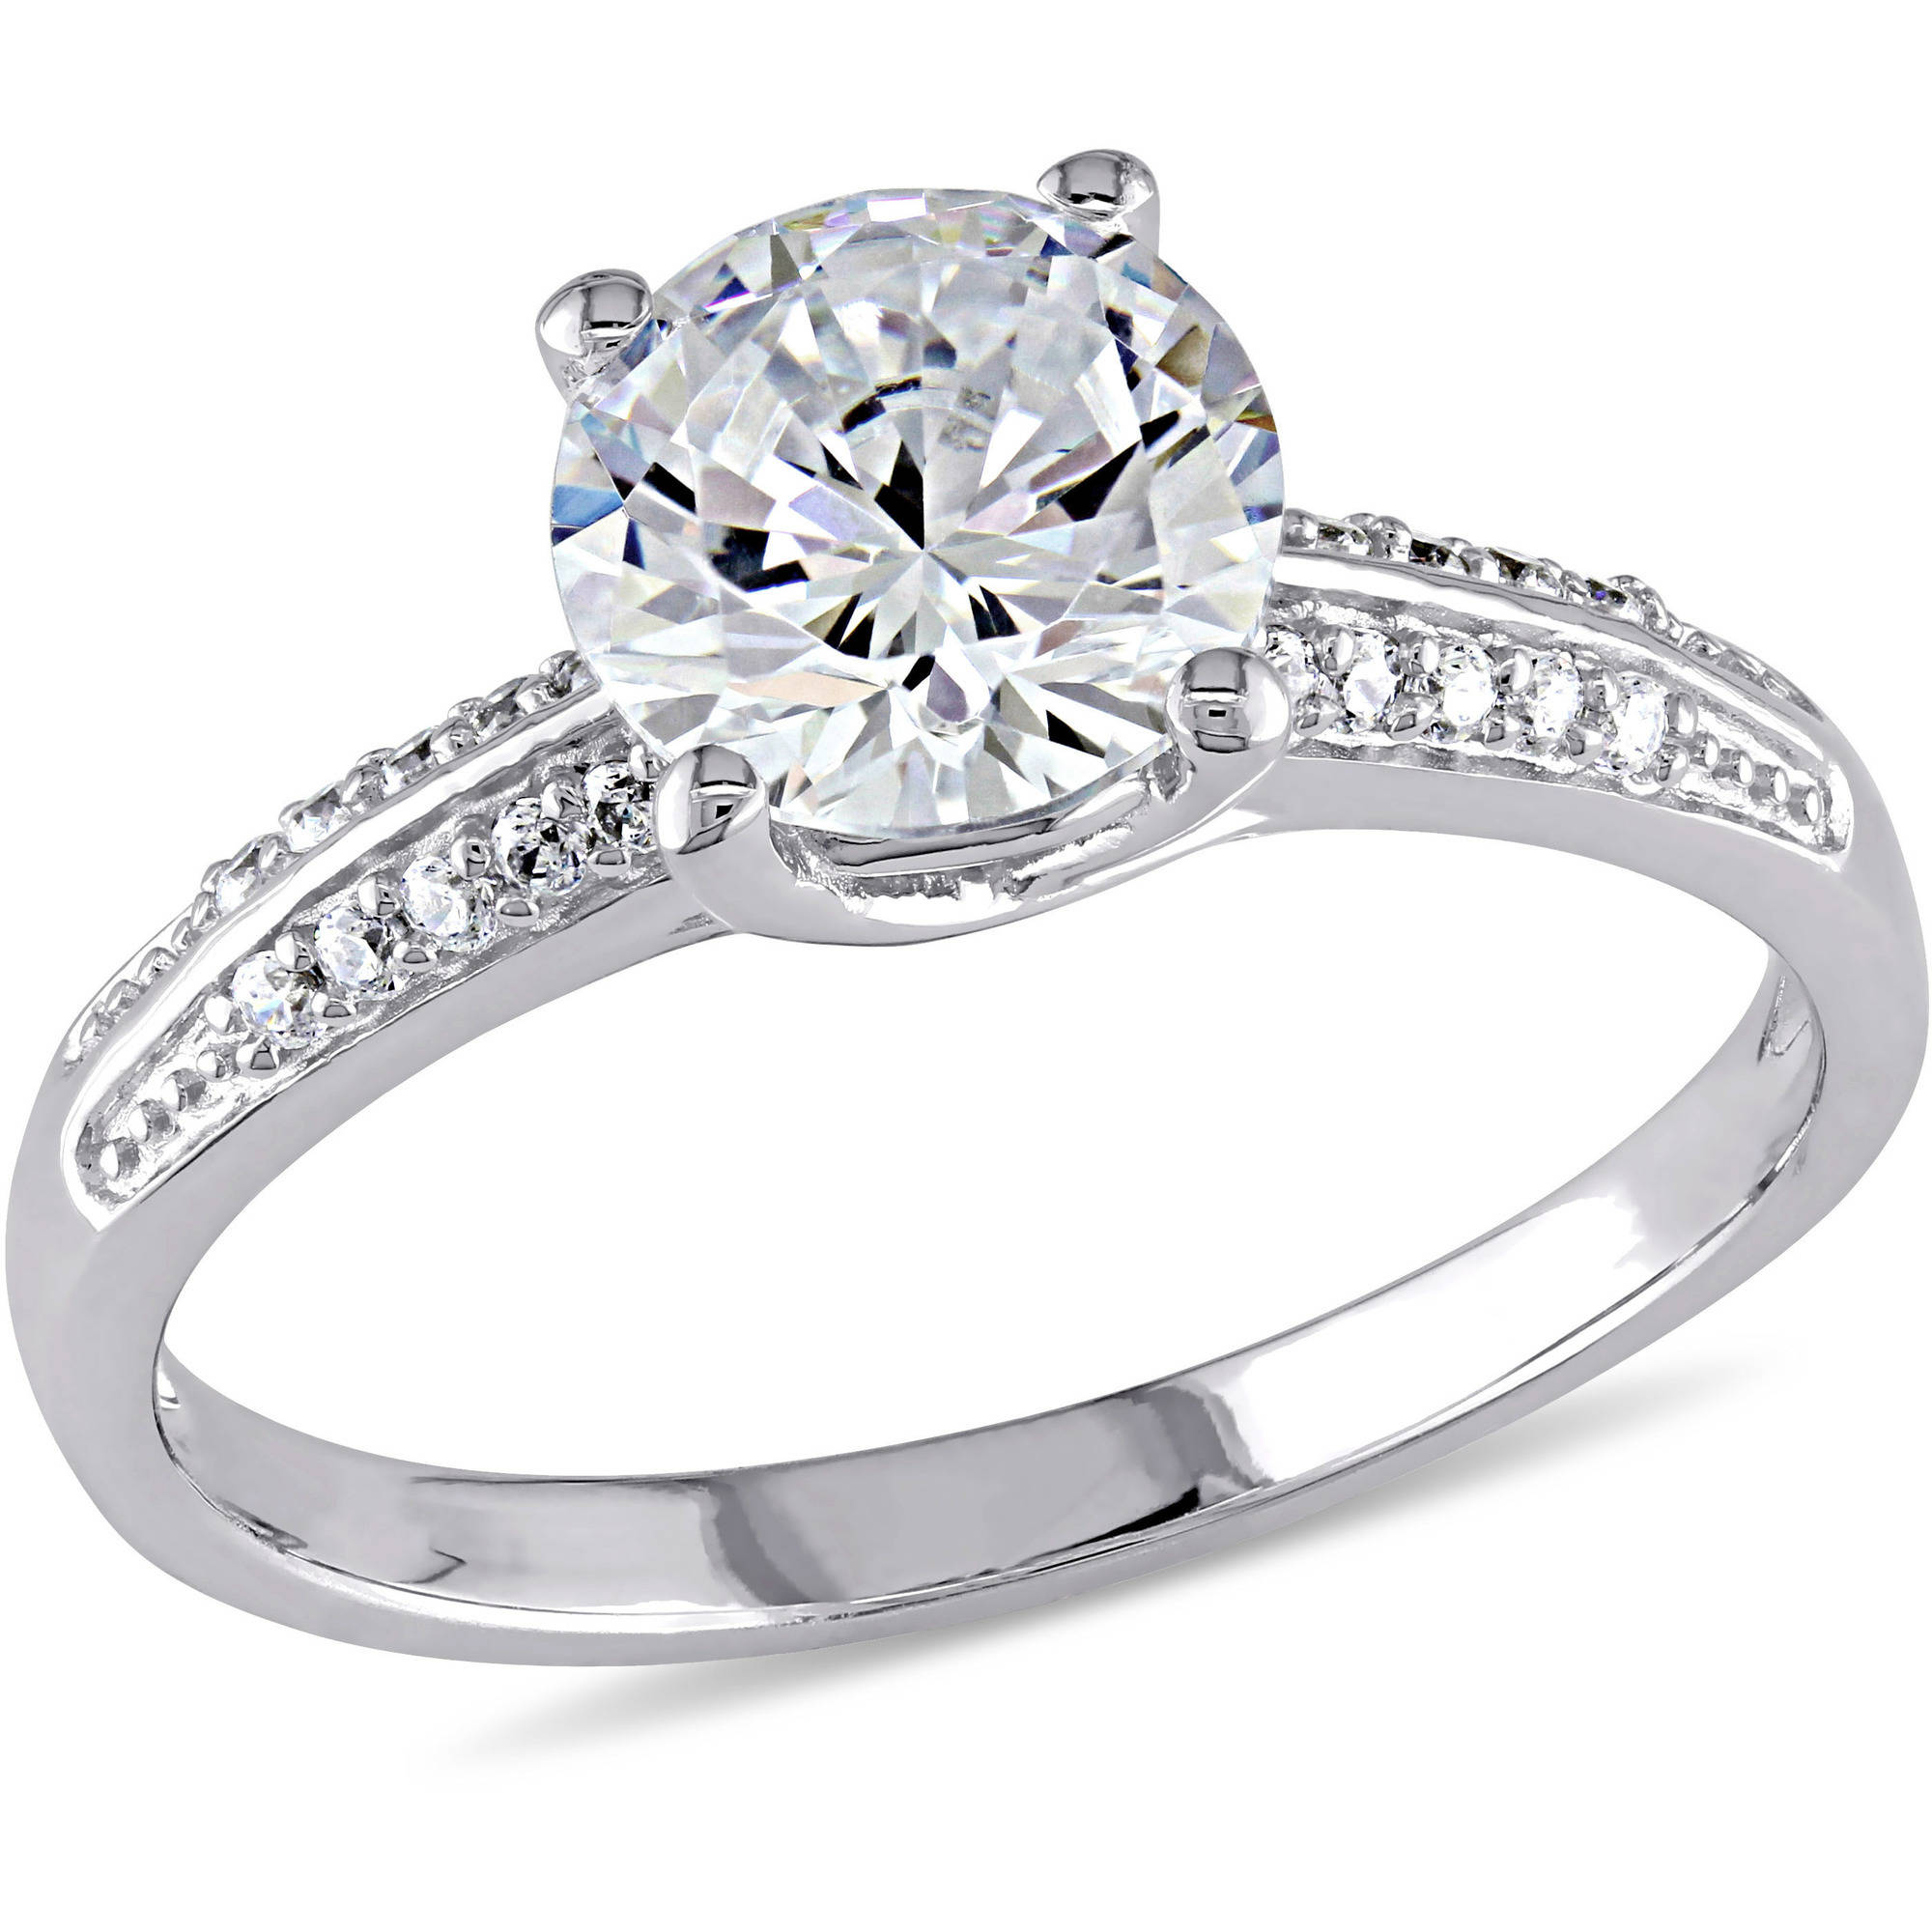 Miabella 3-4/5 Carat T.G.W. CZ Sterling Silver Engagement Ring